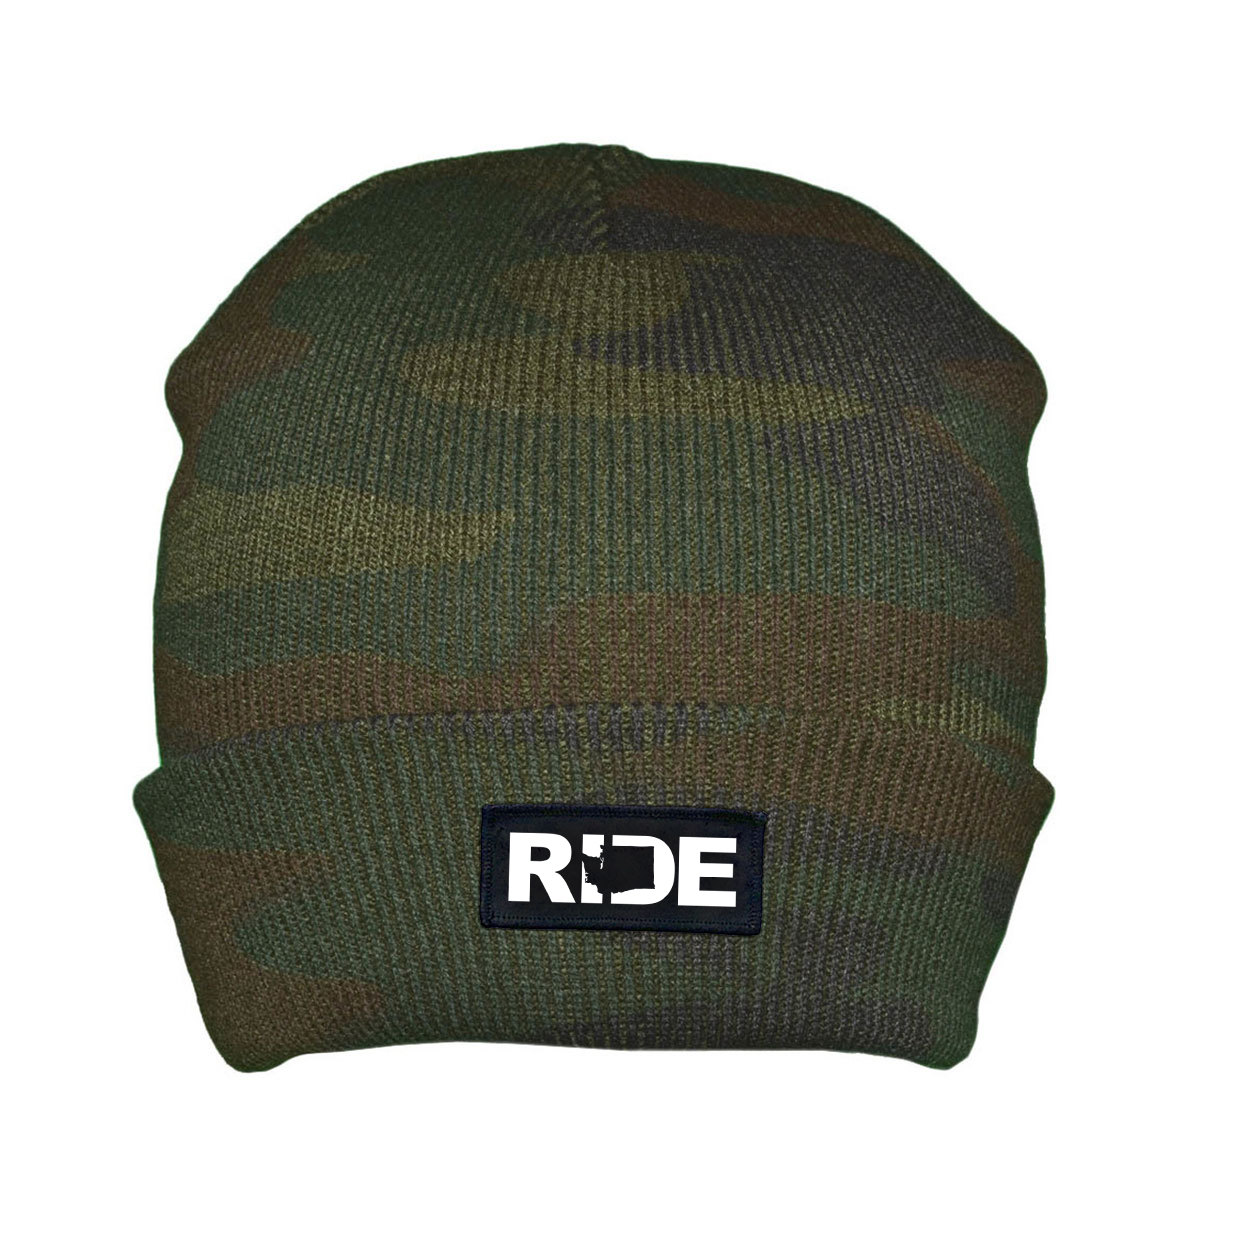 Ride Washington Night Out Woven Patch Roll Up Skully Beanie Camo (White Logo)